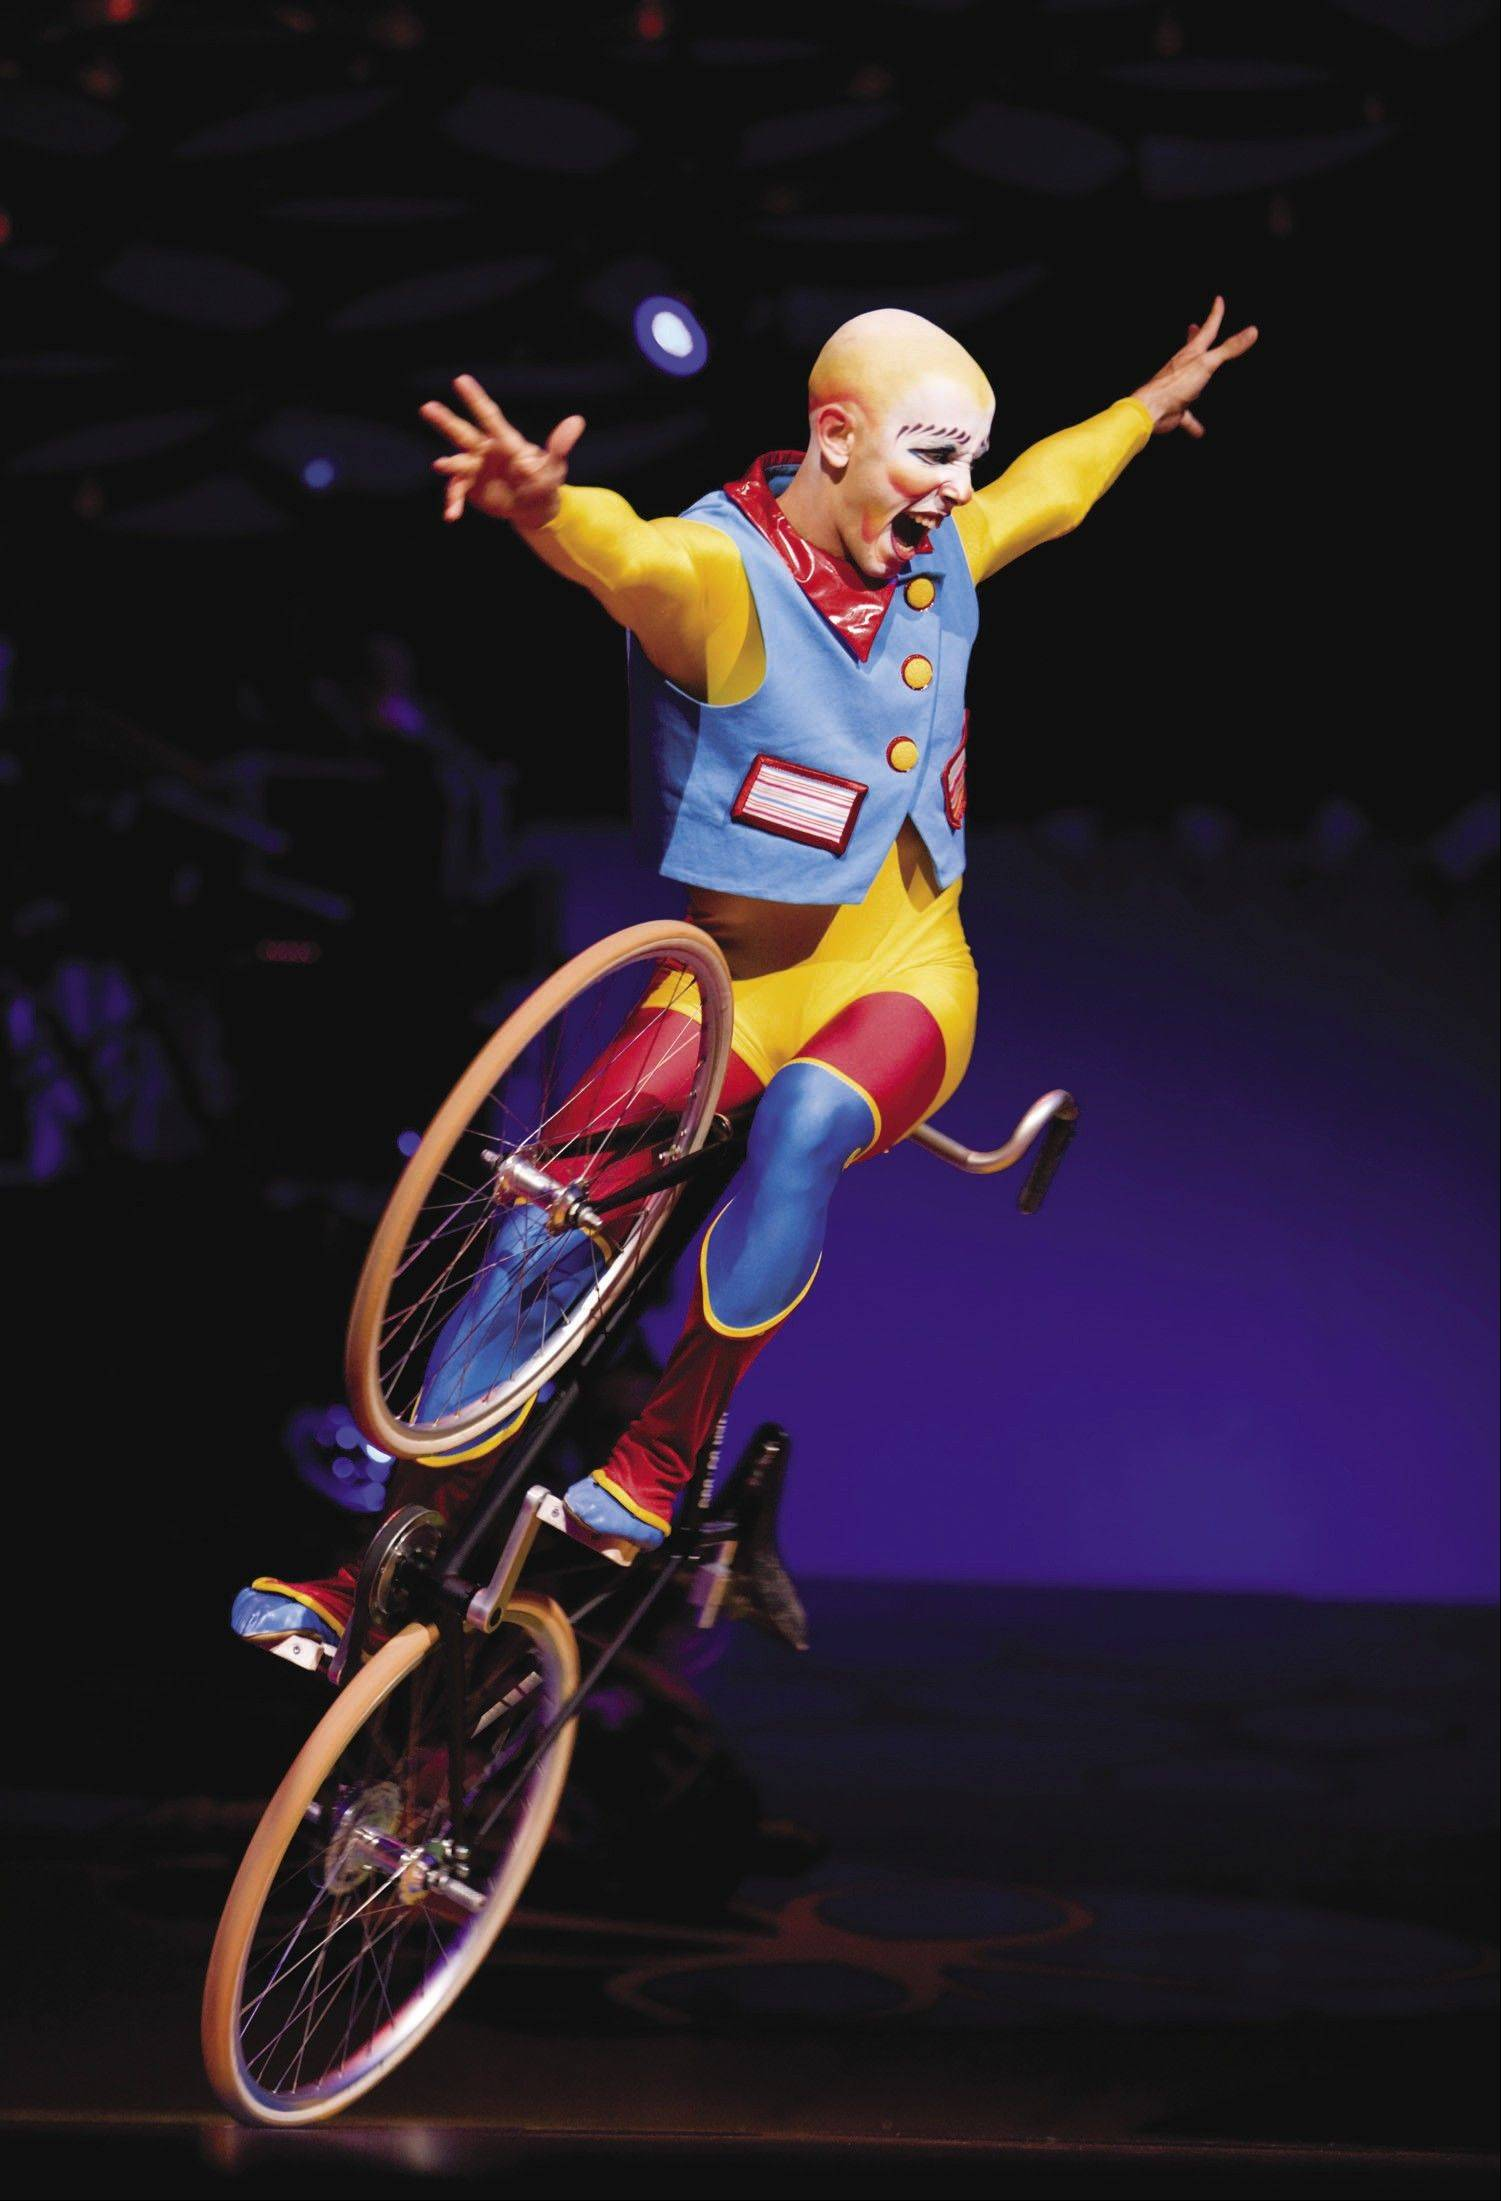 Cirque du Soleil's Saltimbanco tour was a popular non-sports show that has visited the Sears Centre.